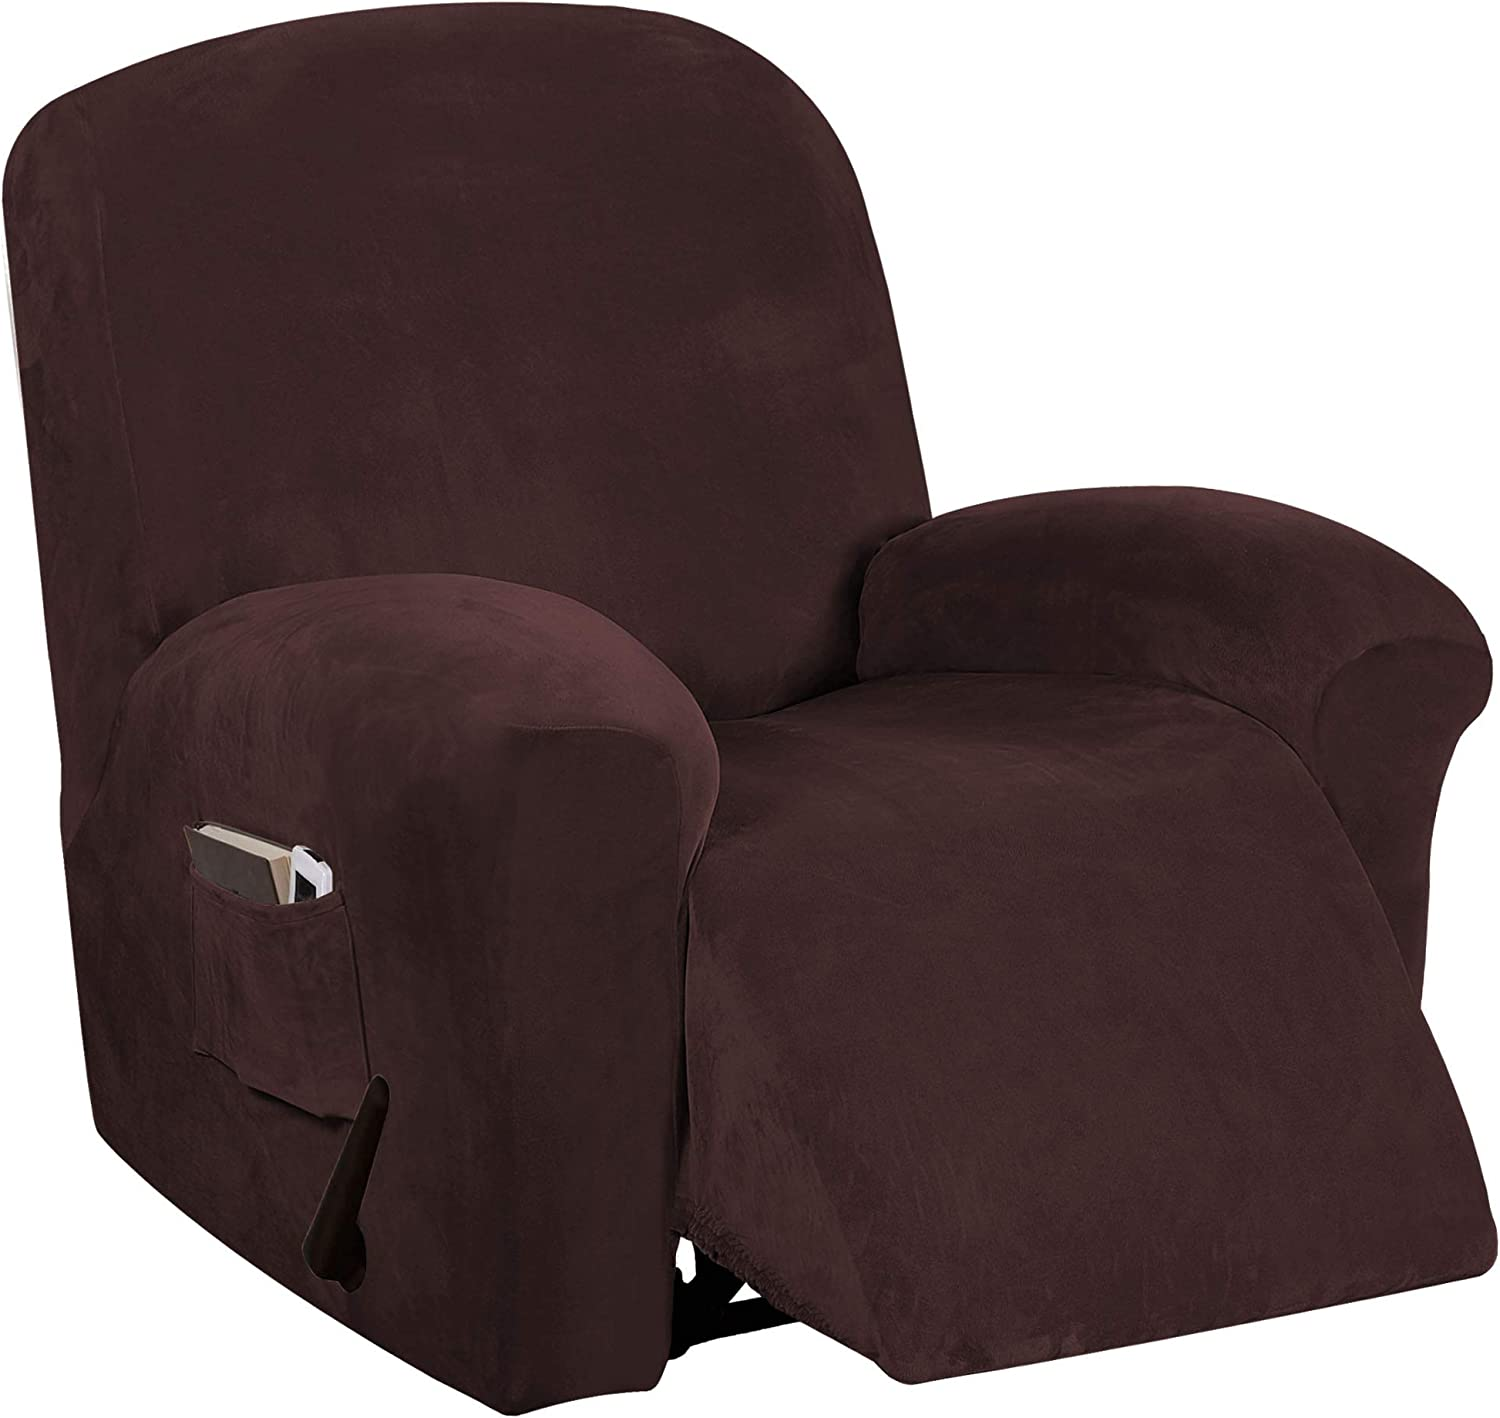 Velvet Stretch 2021 new Indianapolis Mall Recliner Chair Covers Electri for